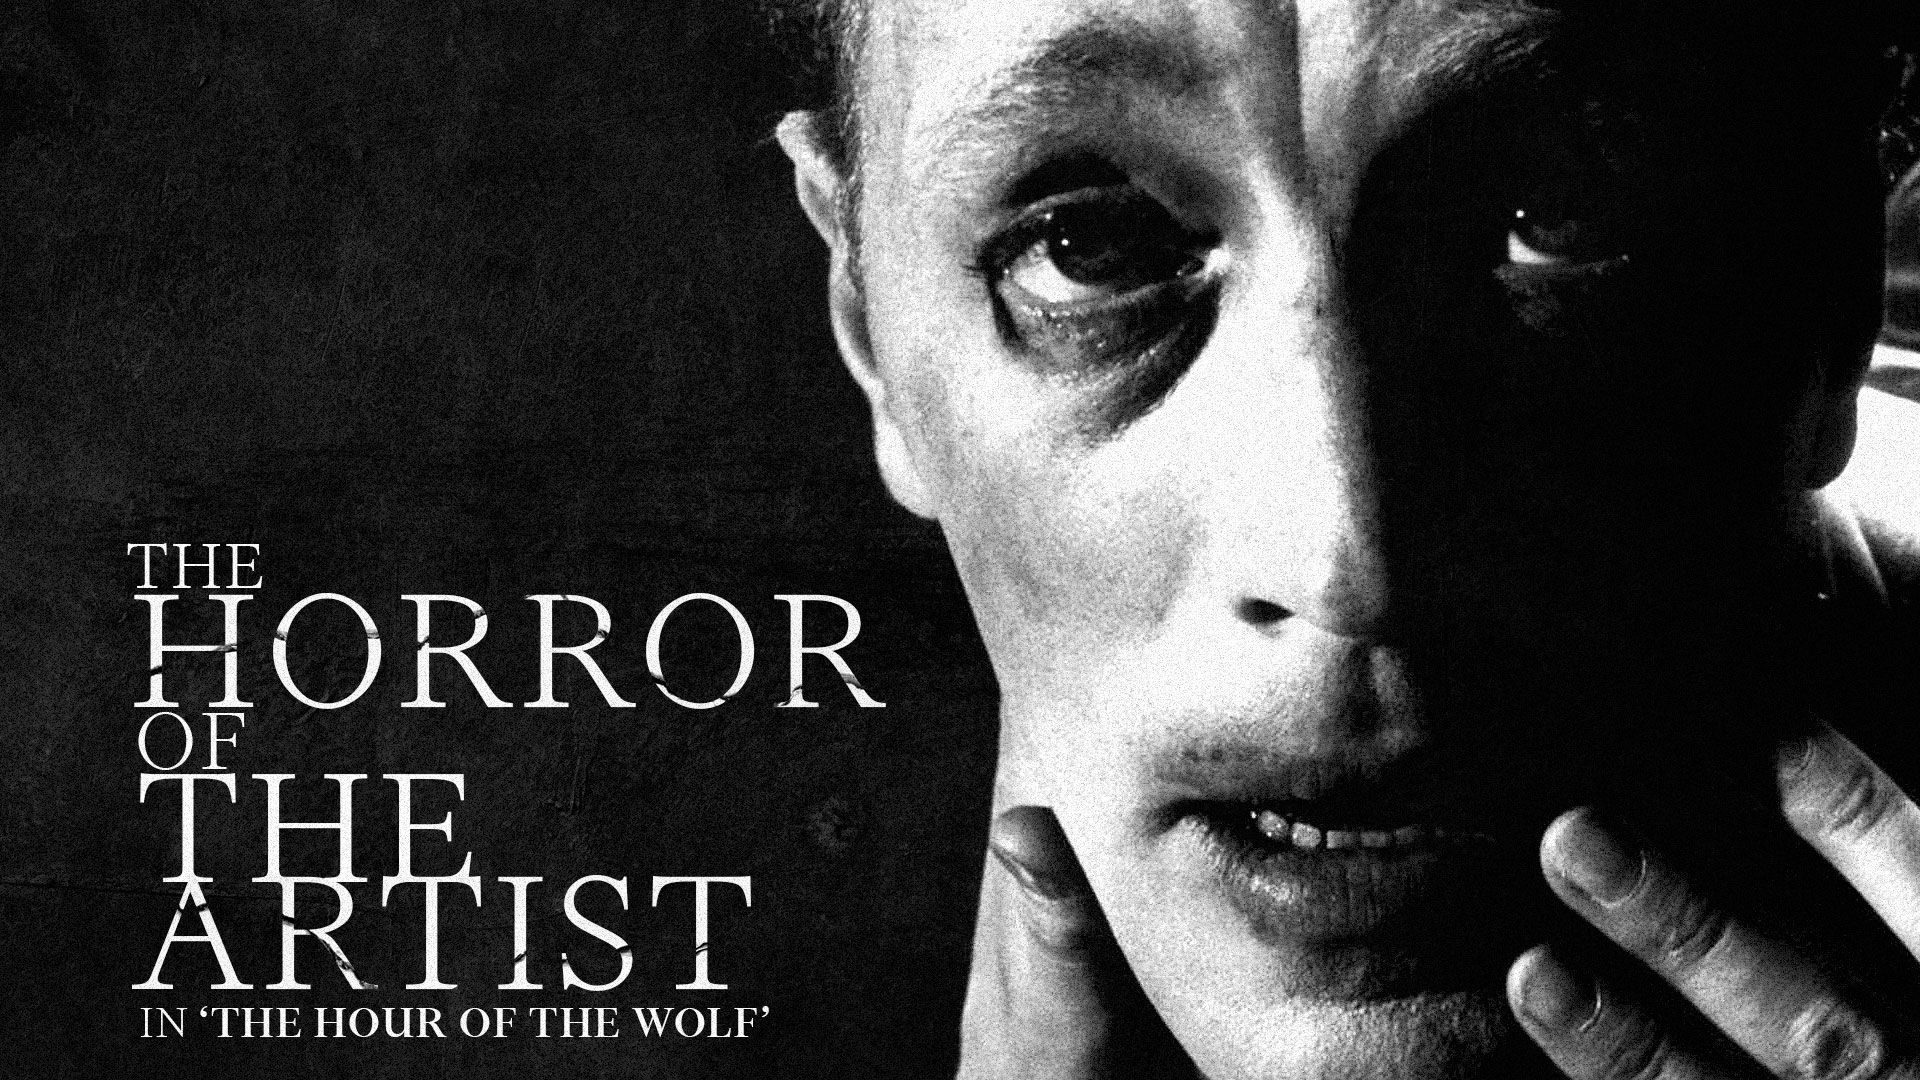 HORRORWOOD™ Presents... 'The Horror of the Artist in 'The Hour of the Wolf''